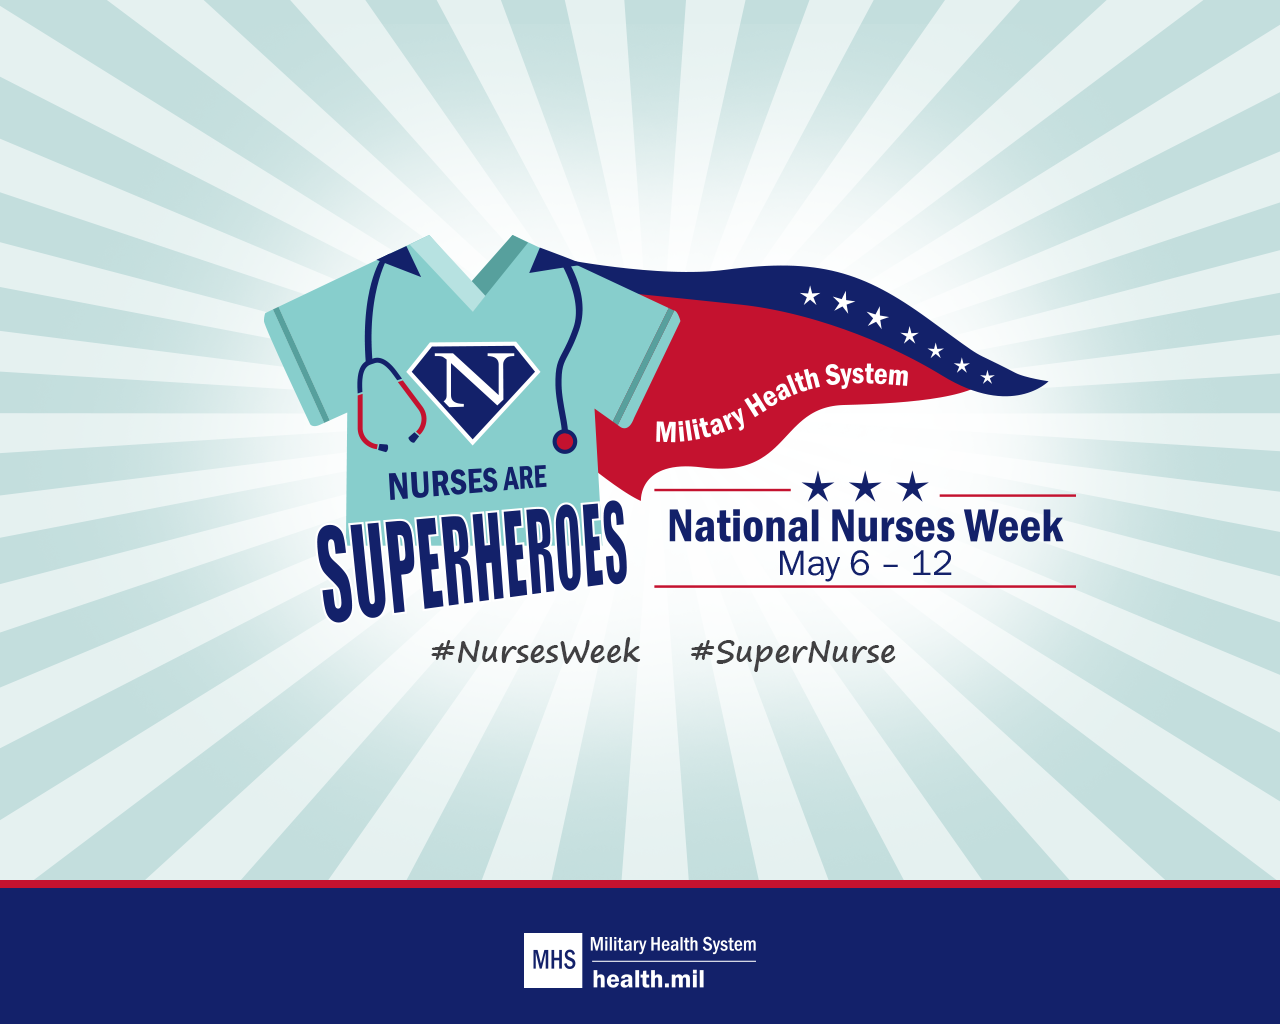 2019 National Nurses Week Screensaver Healthmil 1280x1024